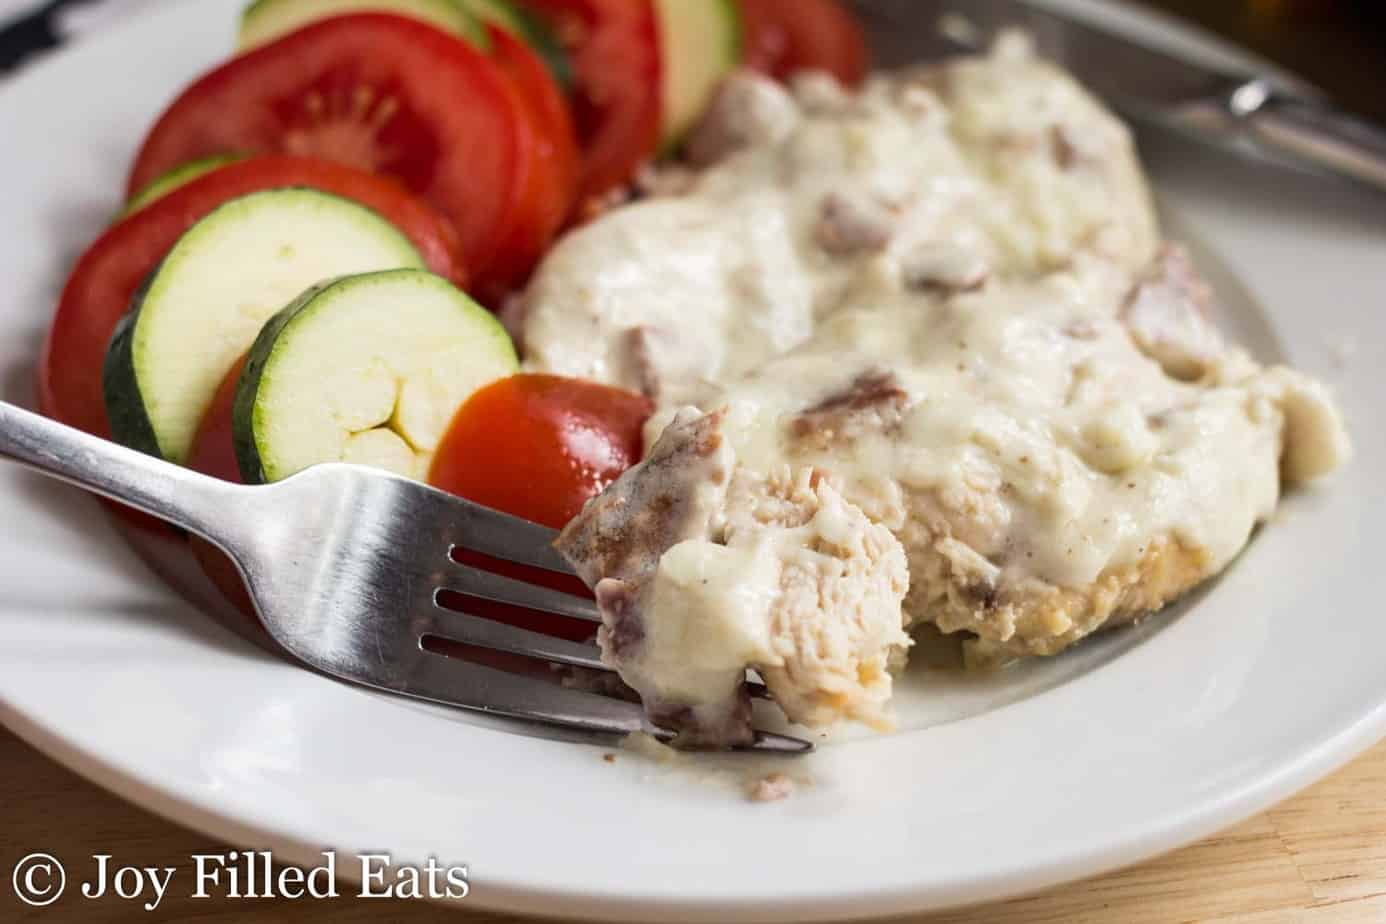 bite of chicken cordon bleu on a fork laying on a plate with a serving of chicken cordon bleu and sliced vegetables